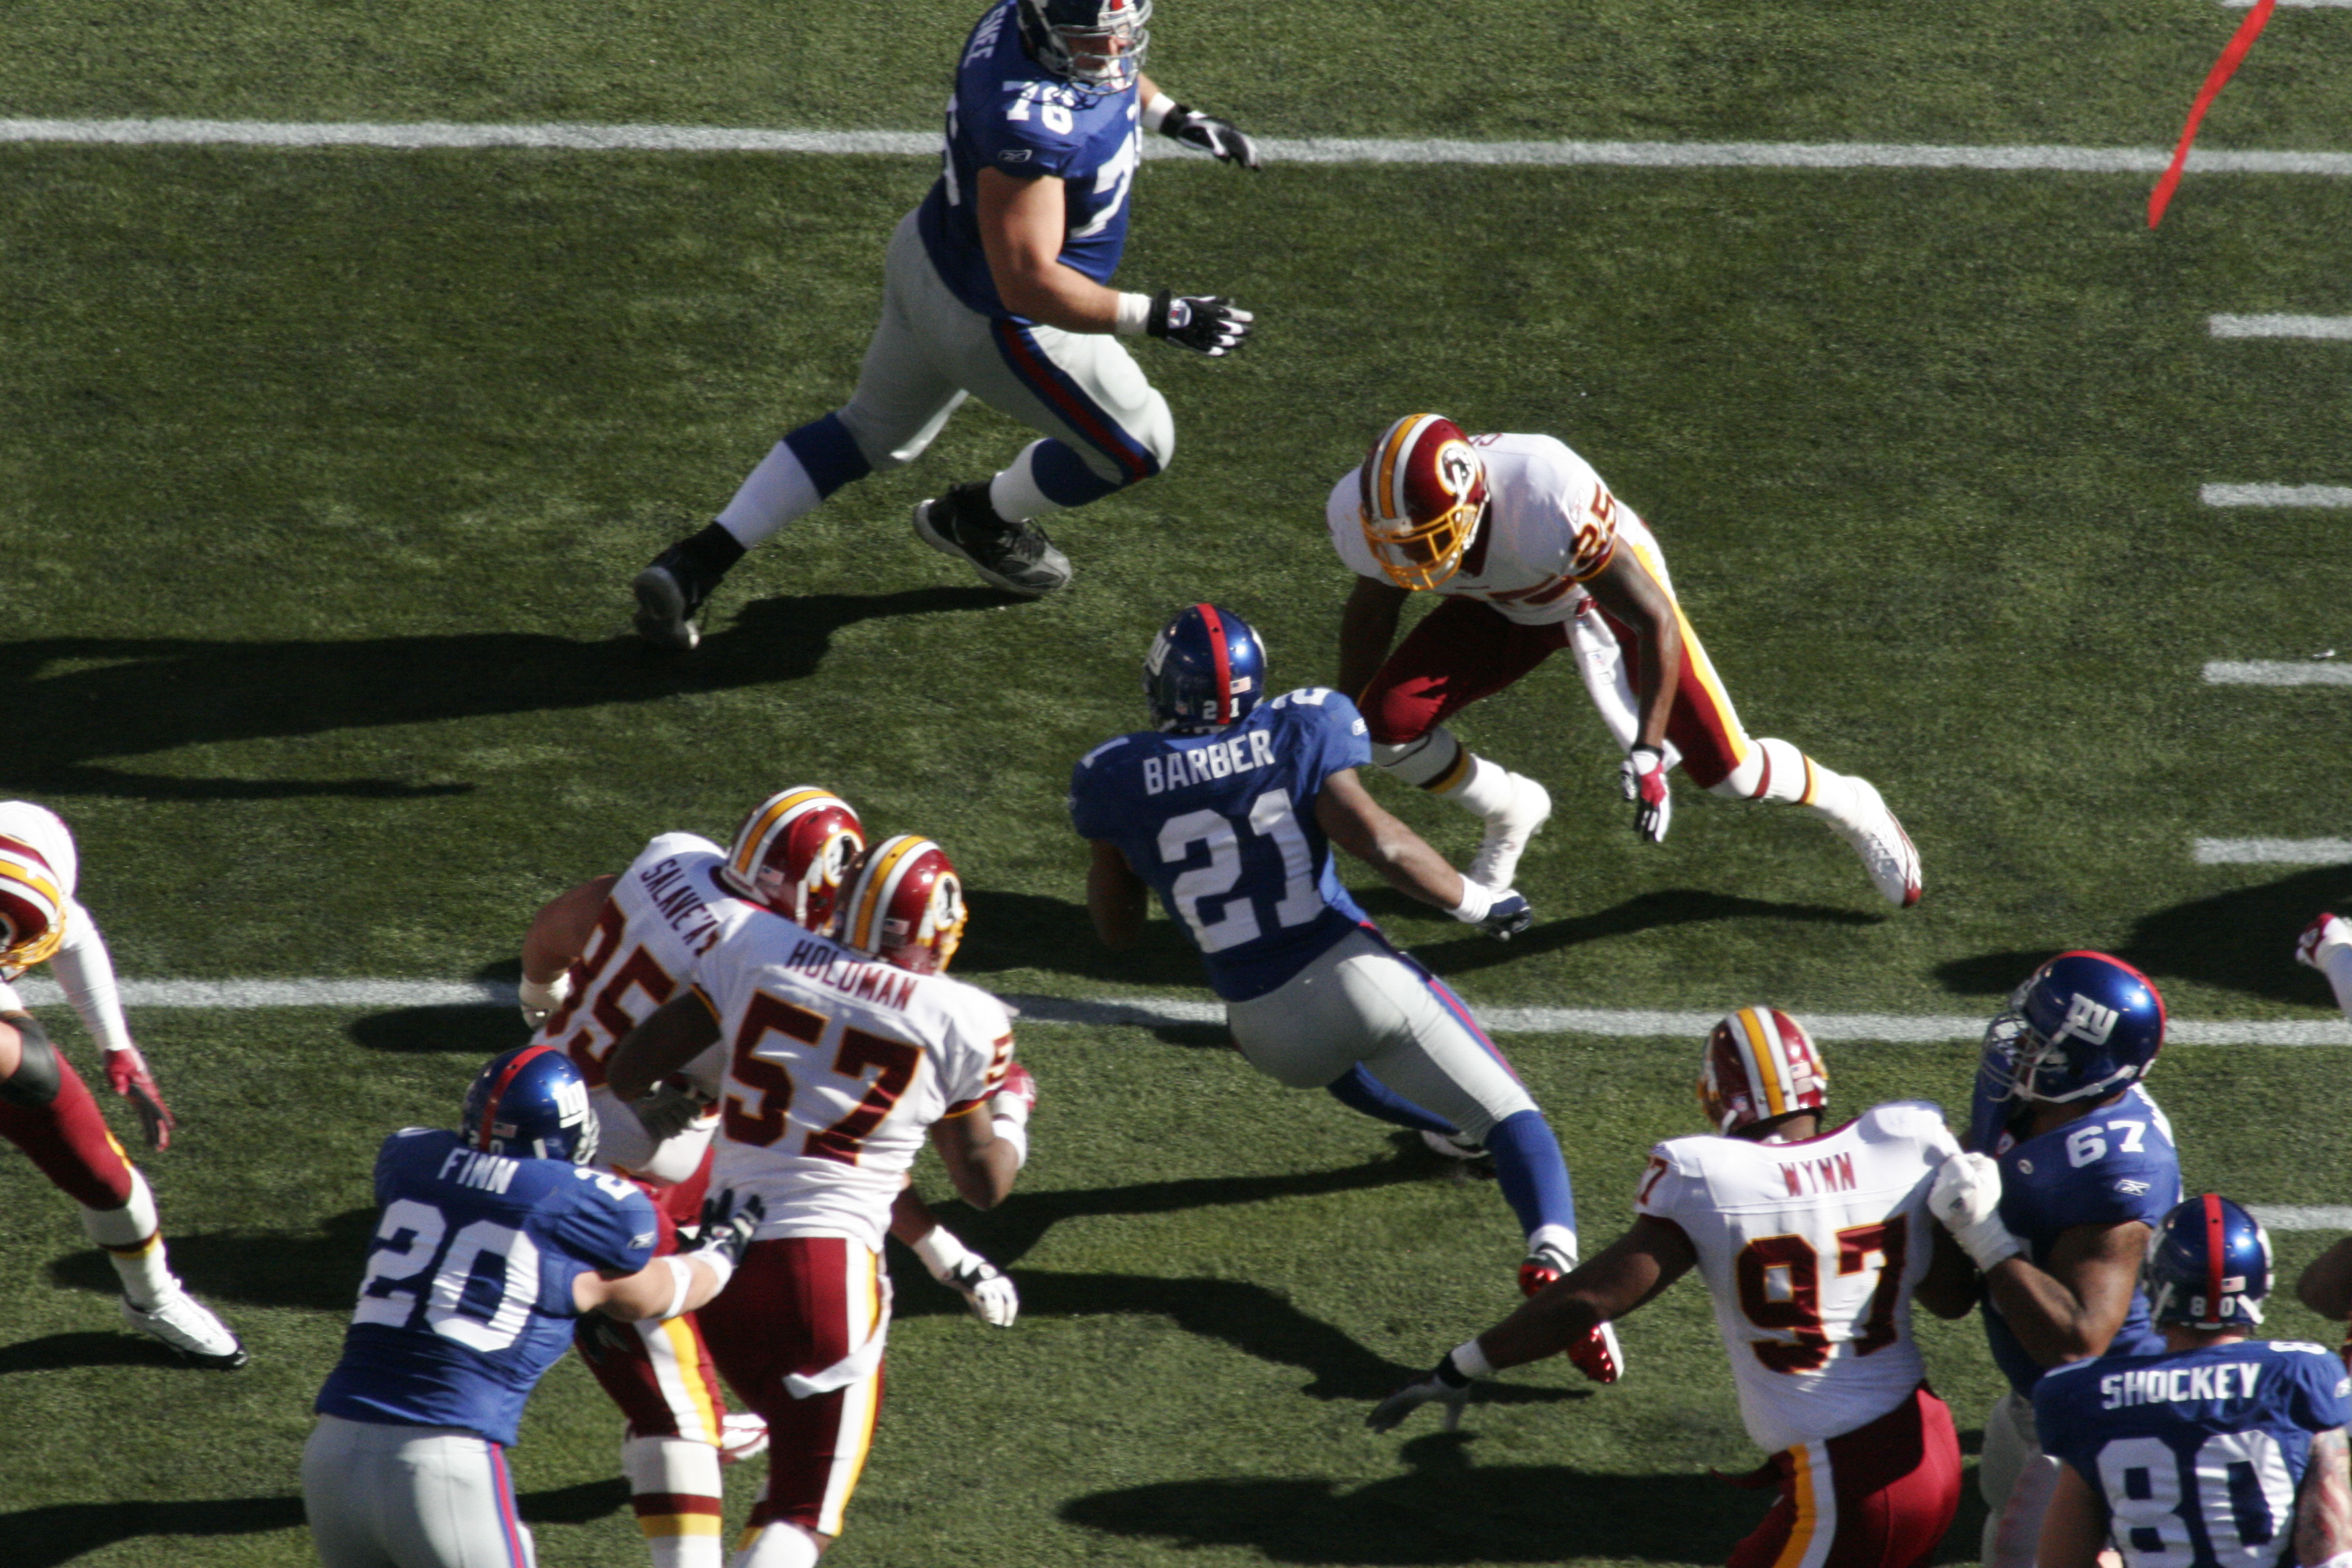 tiki running like only he can giants v redskins relyea blair